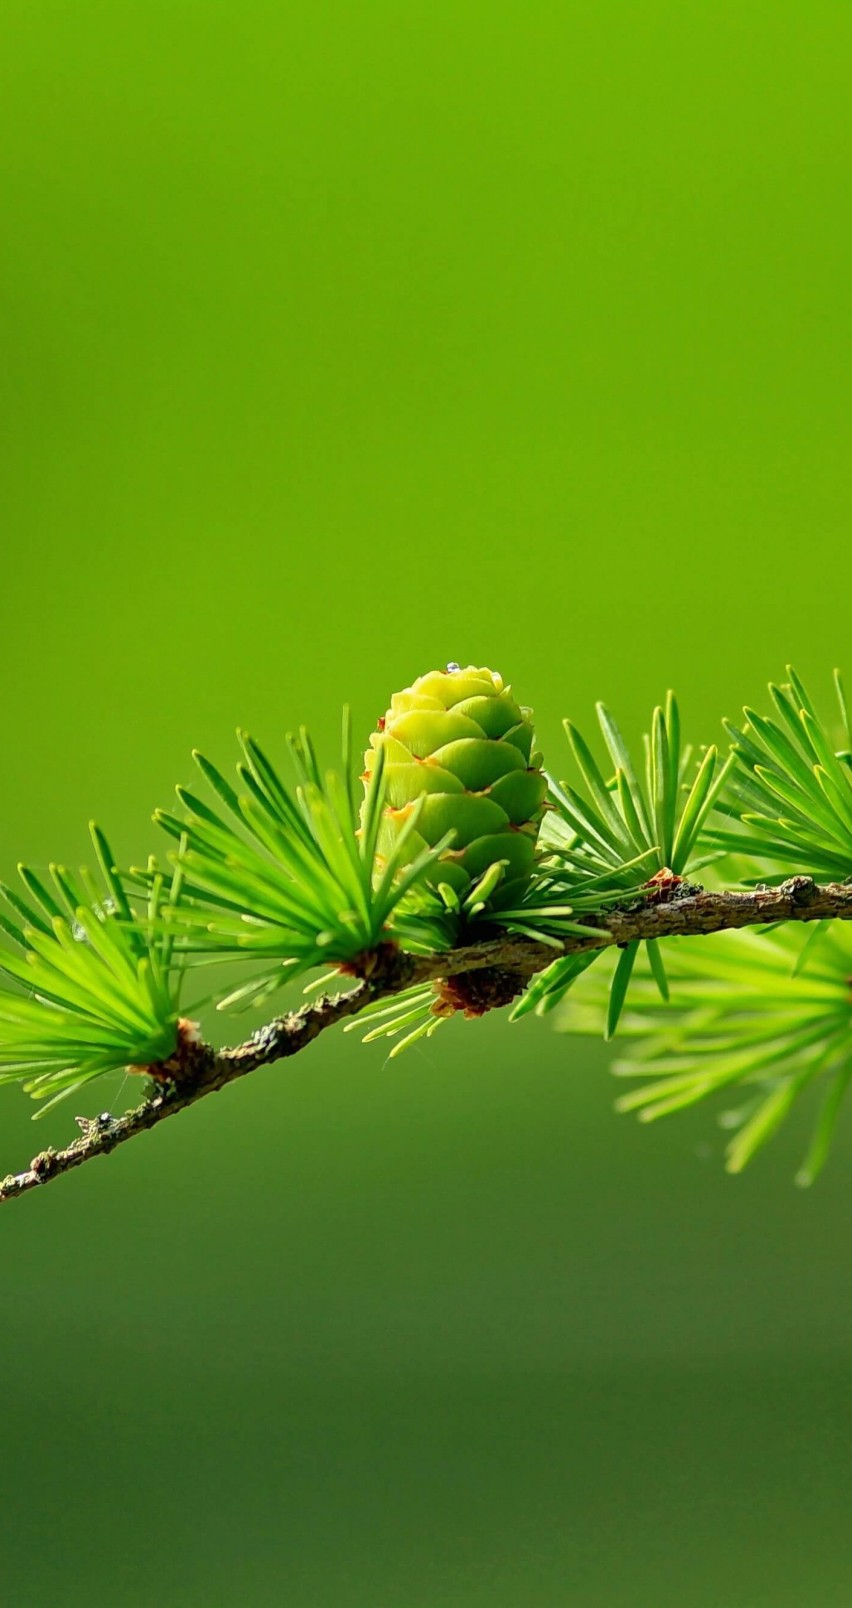 Hd wallpaper tree - Download Branch Of Pine Tree Hd Wallpaper For Iphone 6